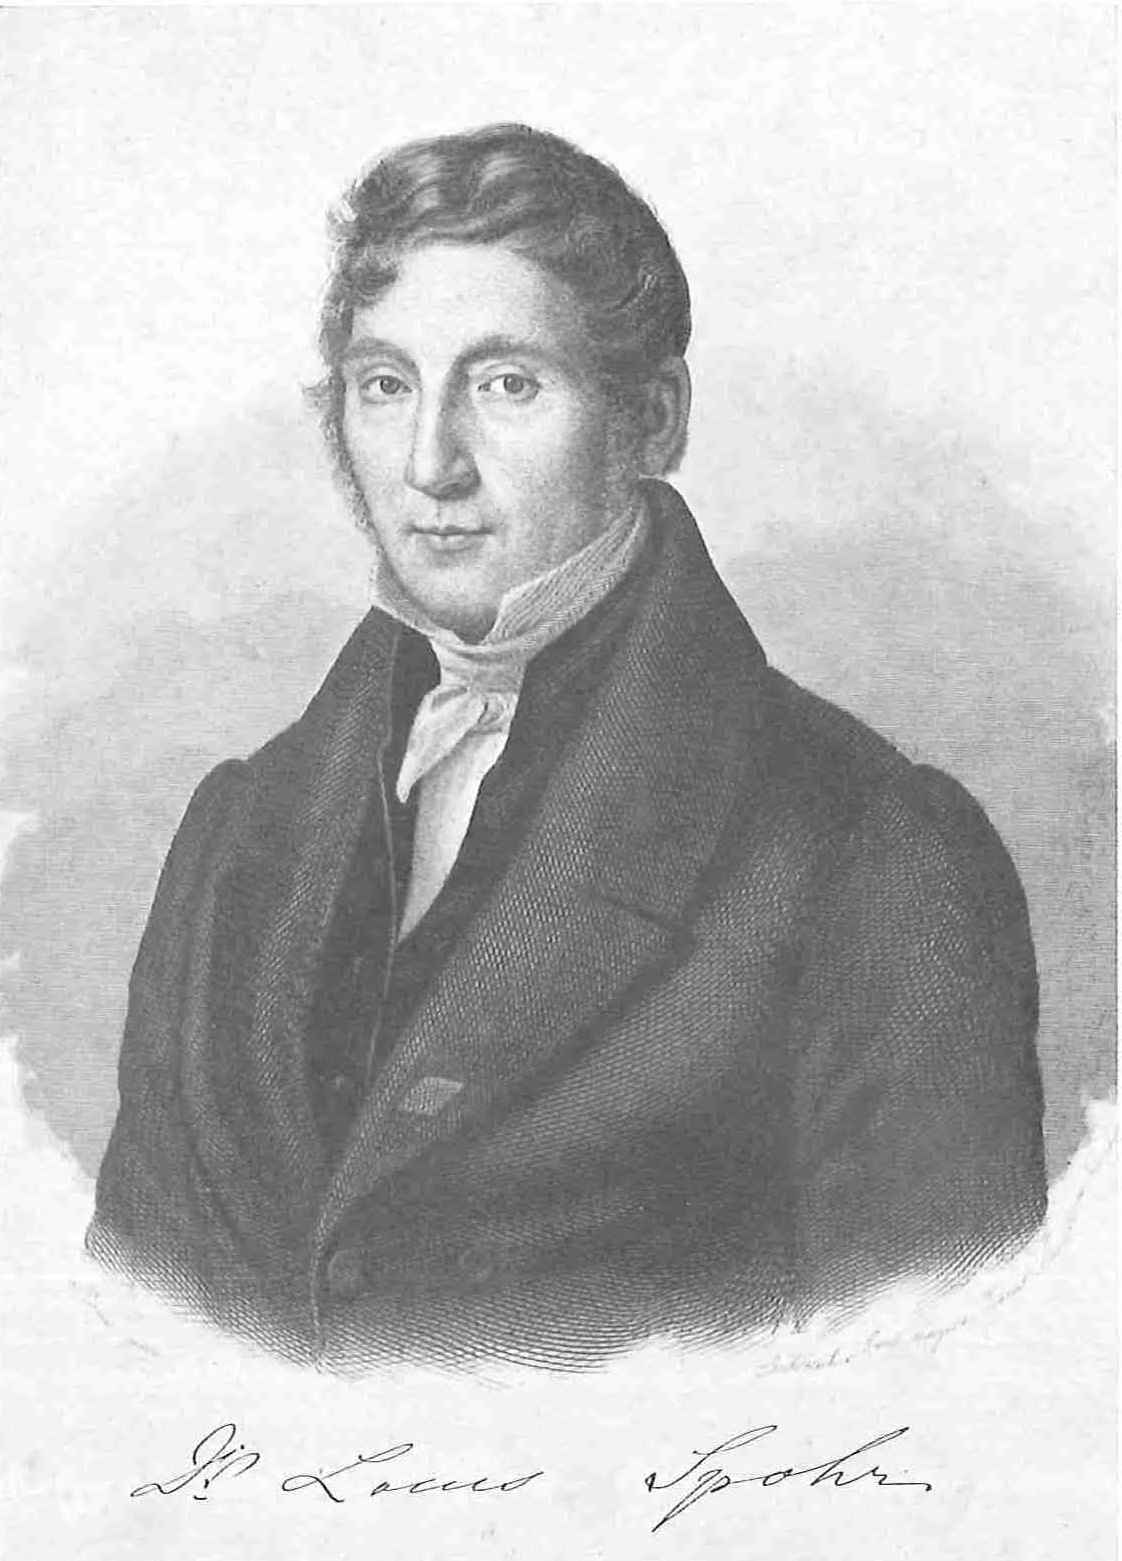 https://upload.wikimedia.org/wikipedia/commons/5/56/Louis_Spohr_von_J_Roux.jpg